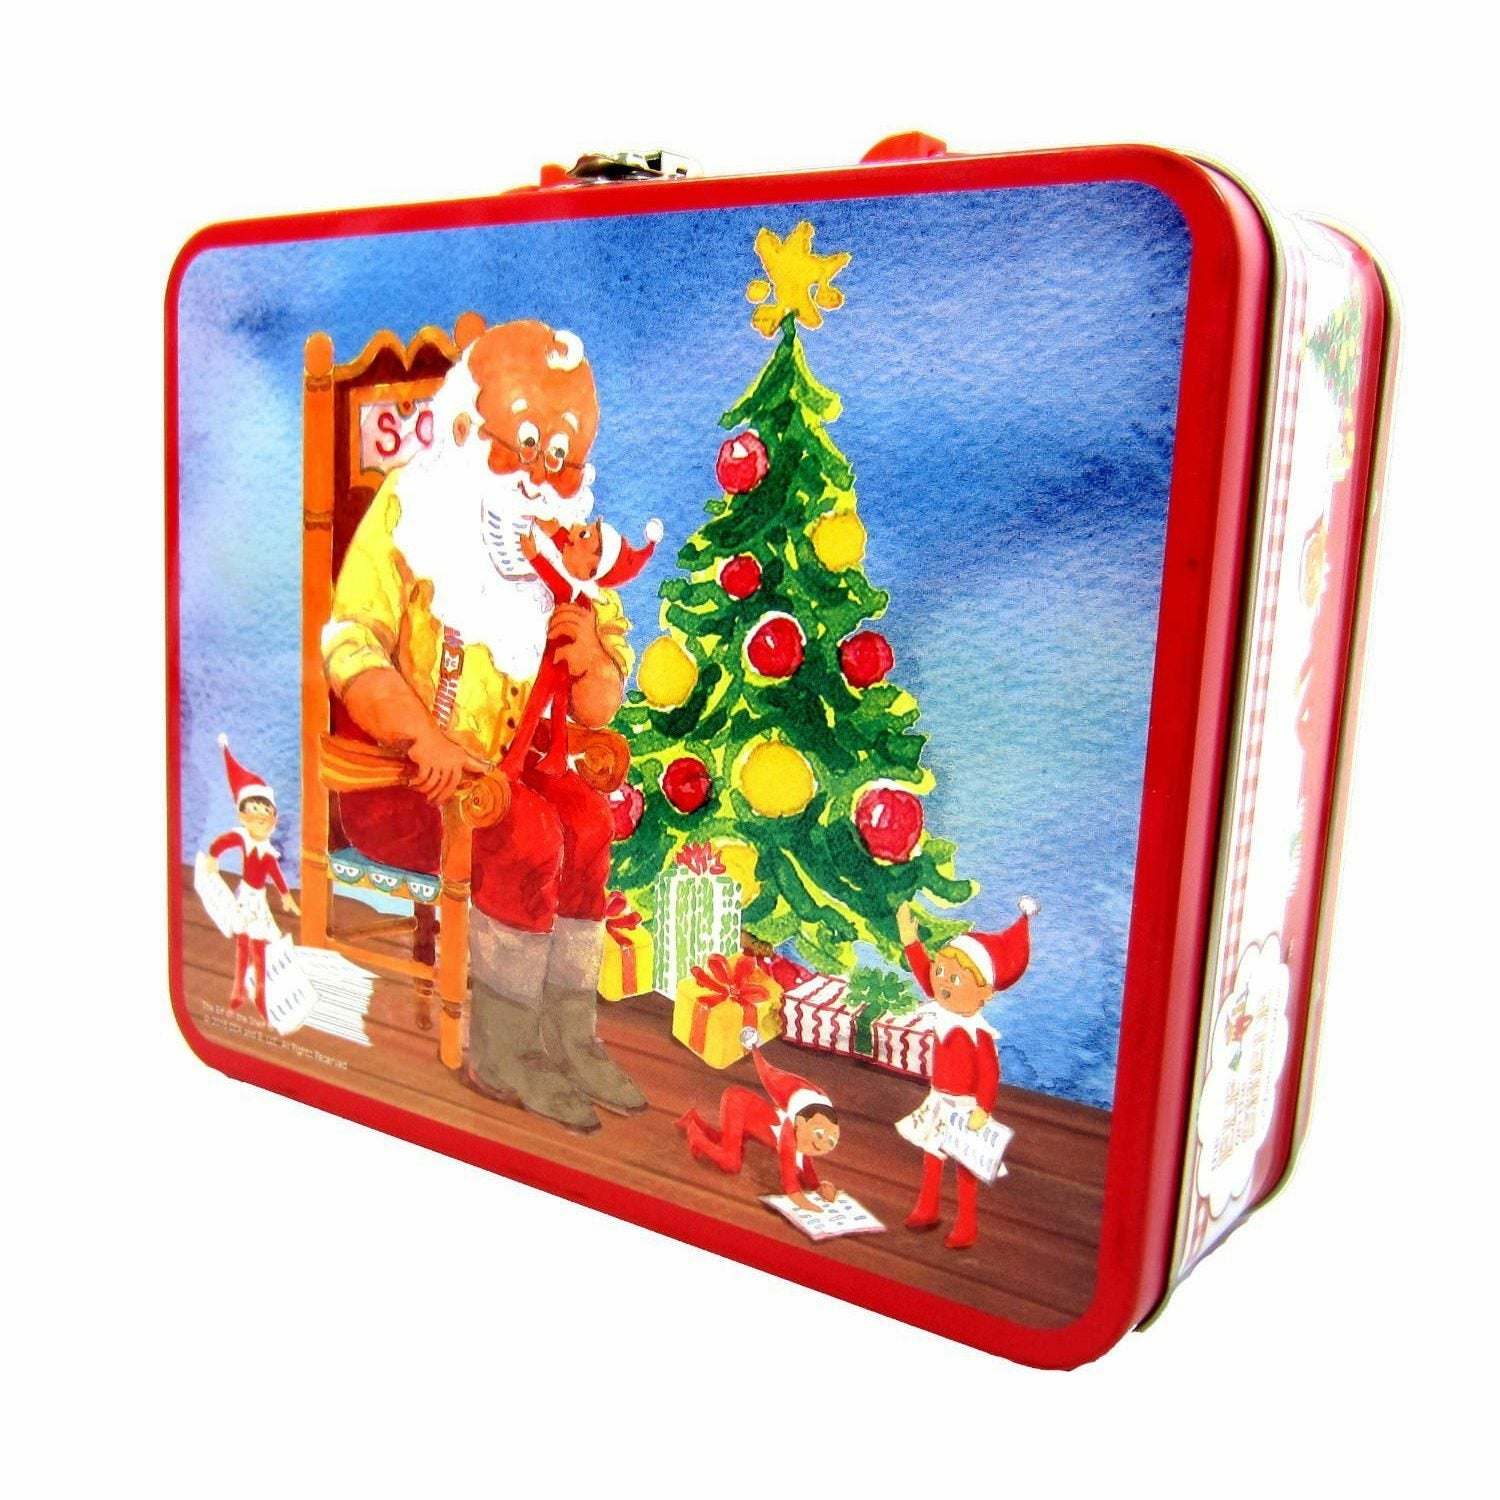 The Elf On The Shelf Lunch Box Santa Ver. With 48 Piece Puzzle